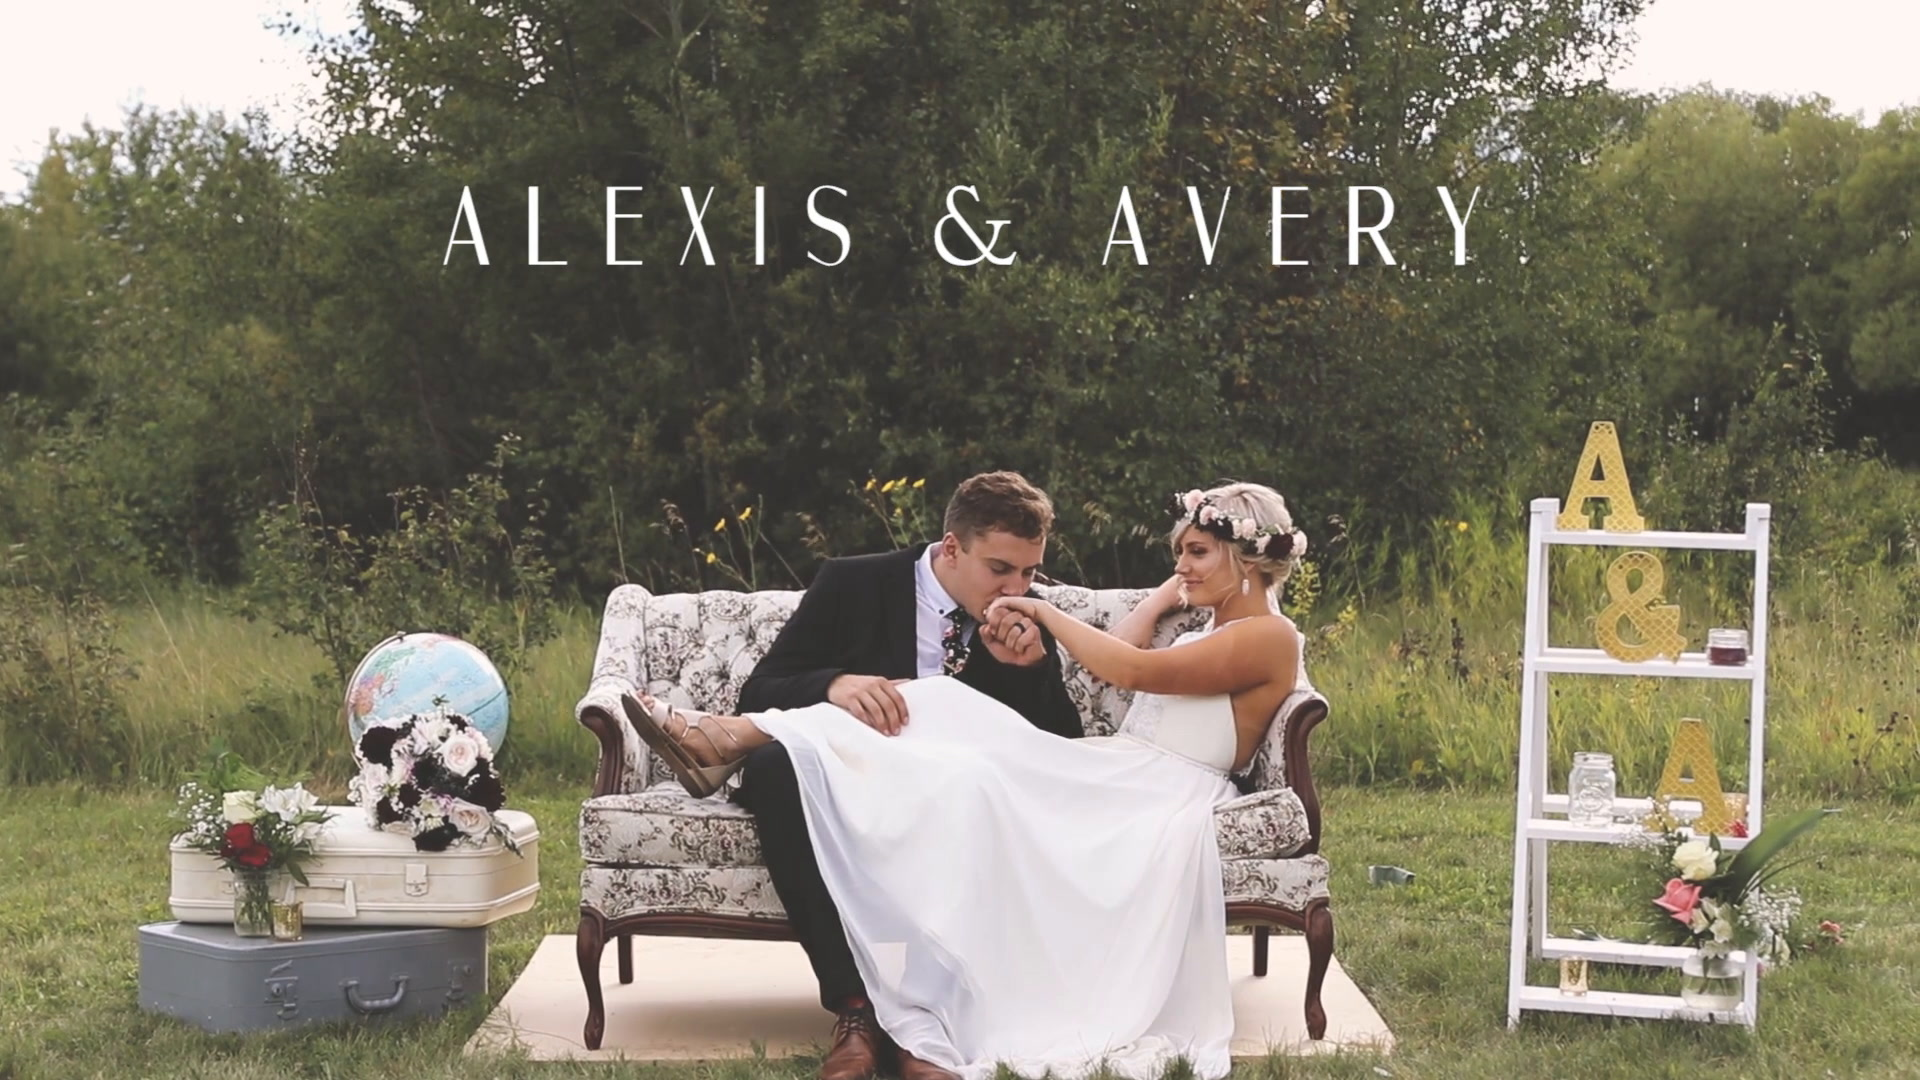 Alexis  + Avery | Red Deer, Canada | A Family Farm